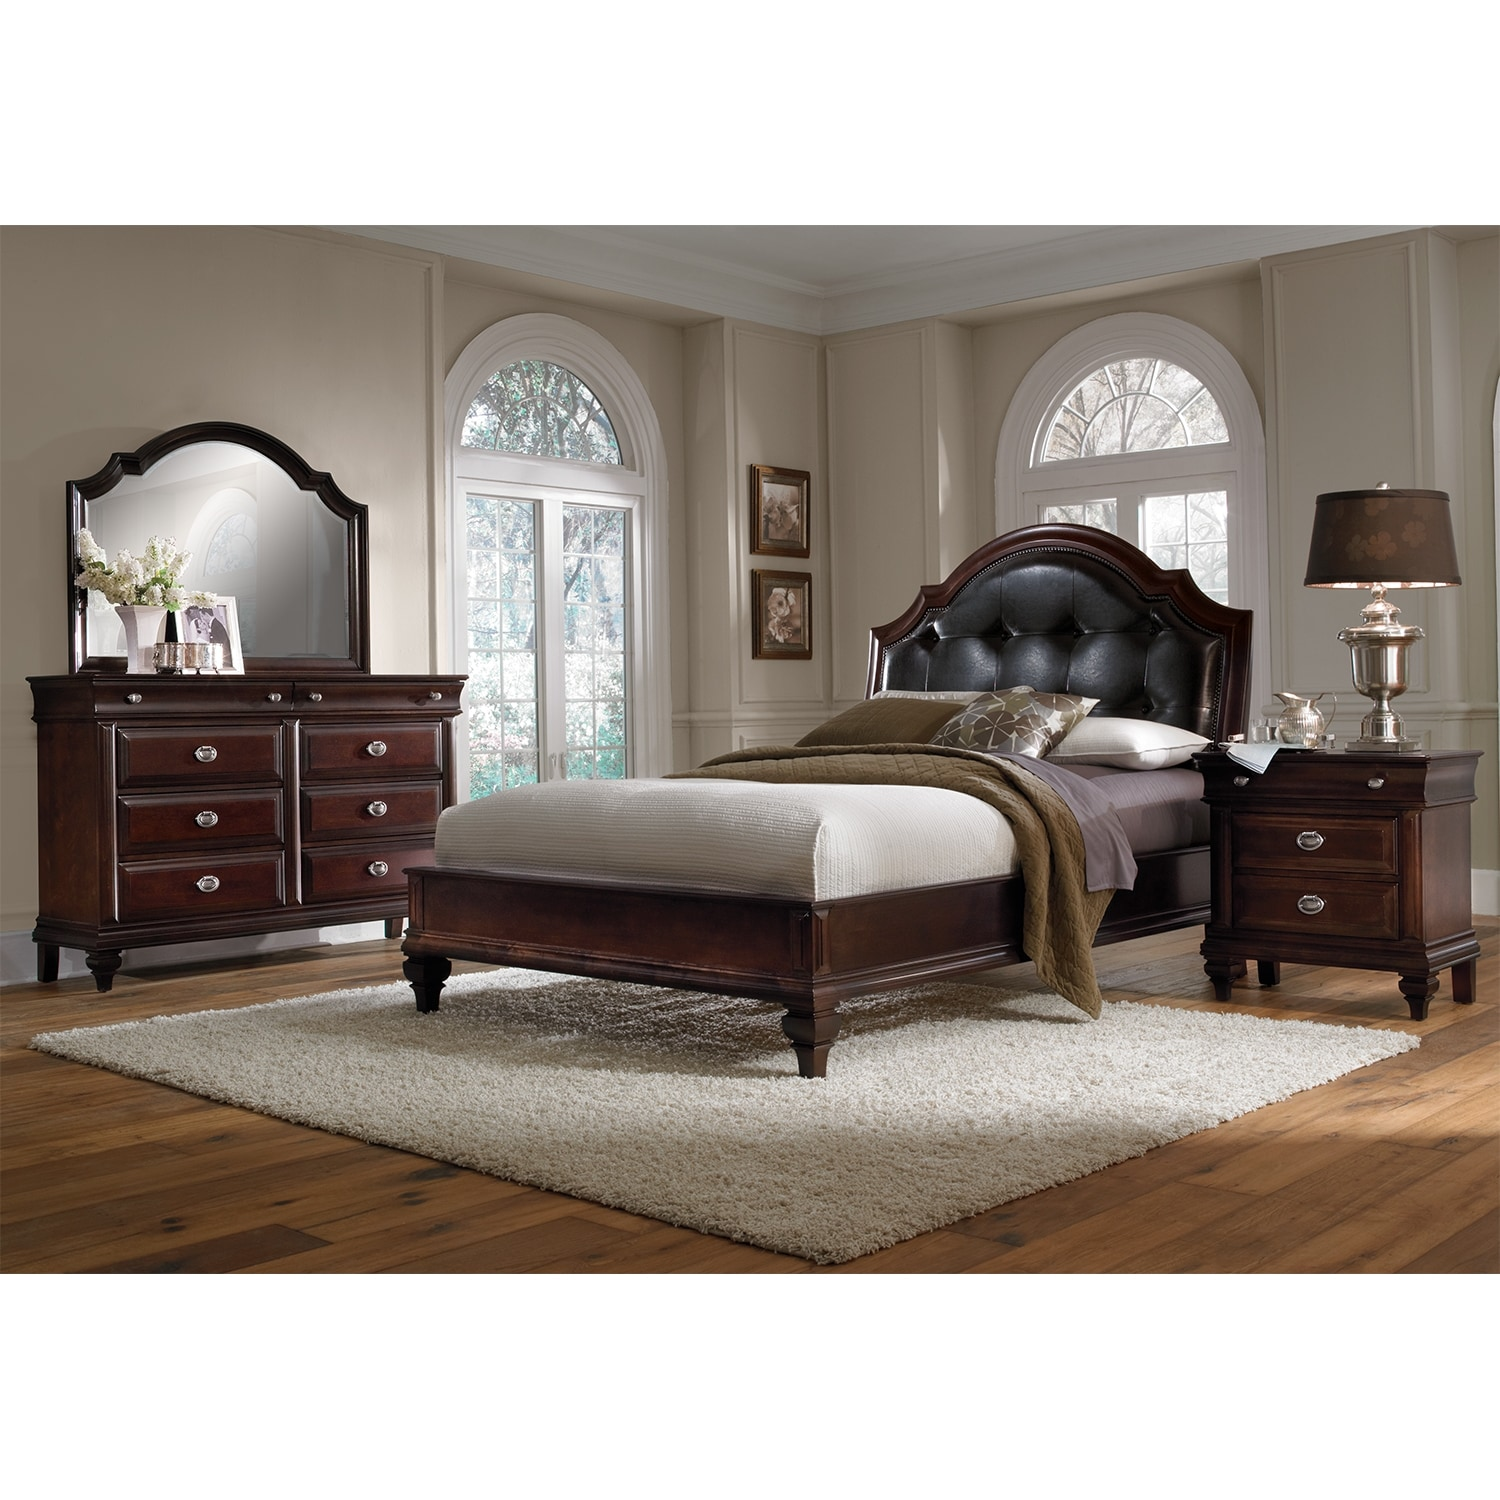 Manhattan 6 piece queen bedroom set cherry american for American furniture bedroom furniture